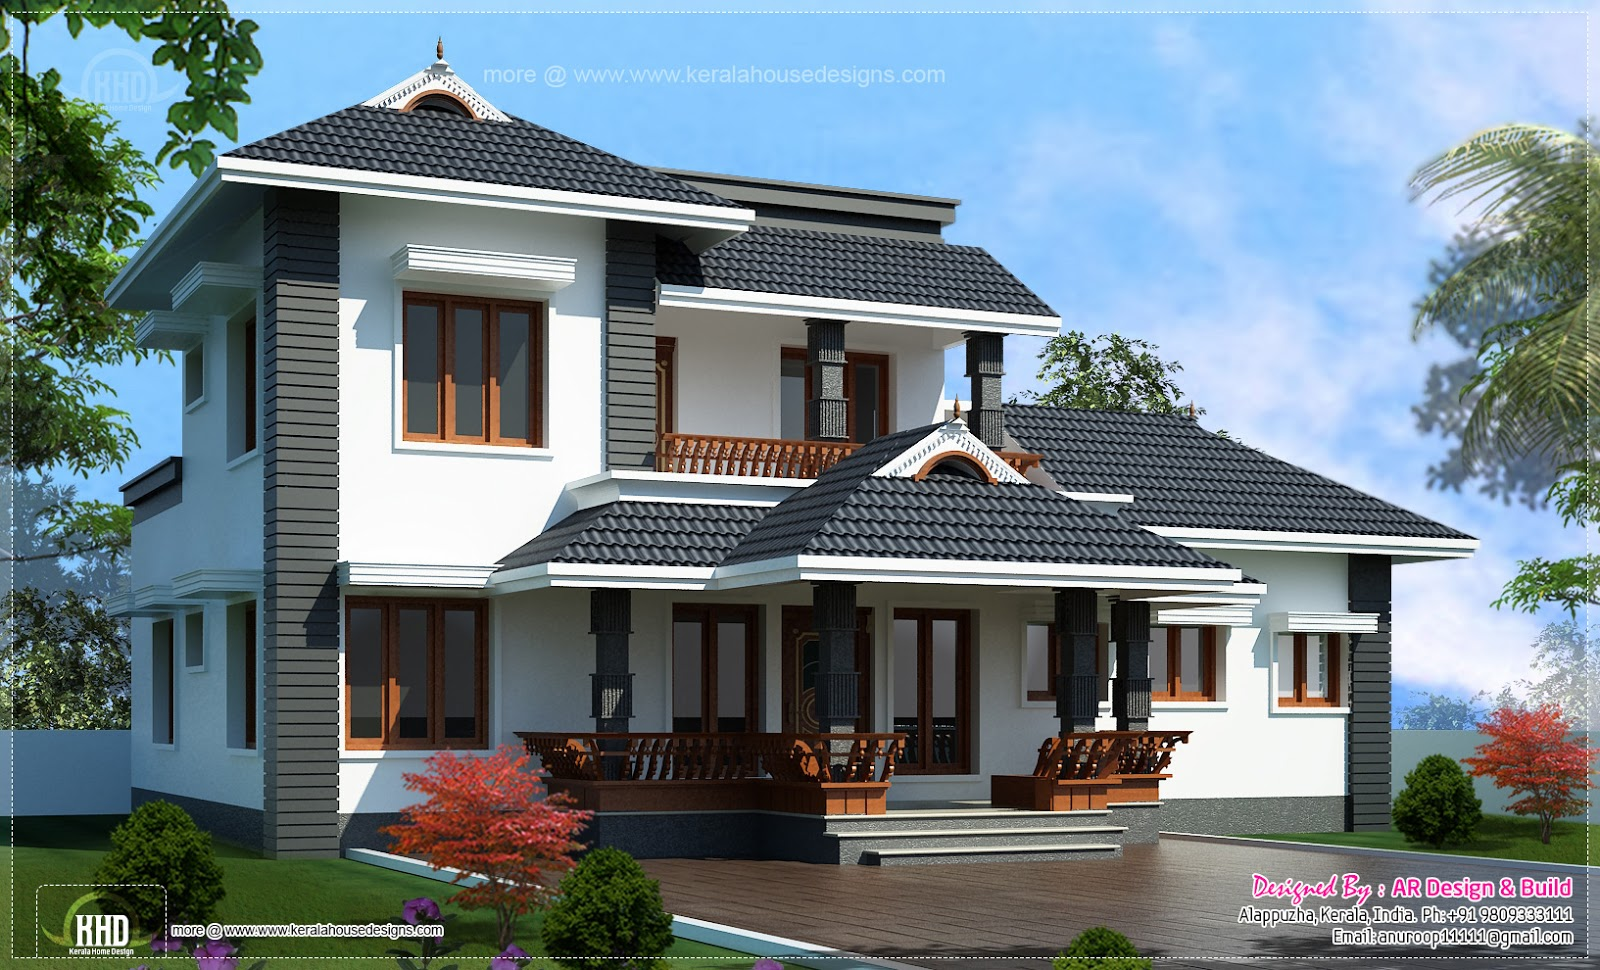 2000 4 bedroom sloping roof residence kerala for Price to build a 2000 square foot house